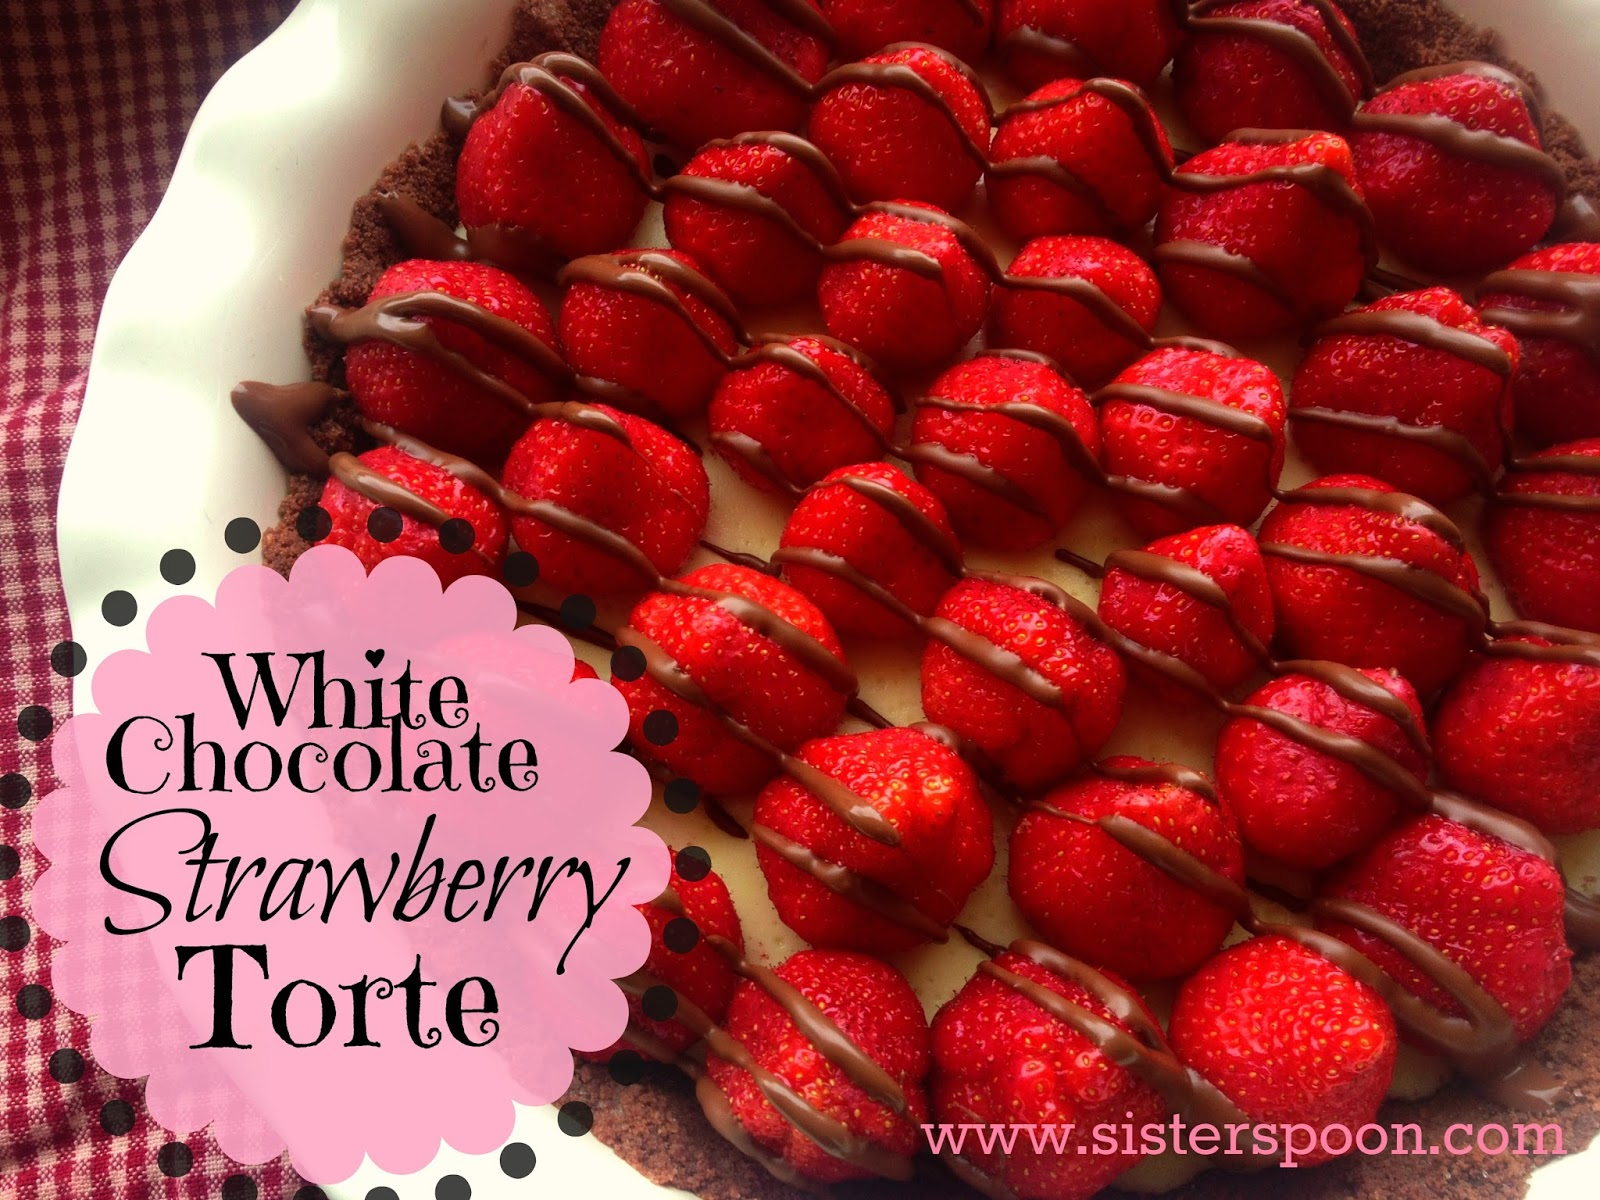 ... torte ginger apple torte chocolate ganache torte strawberry torte